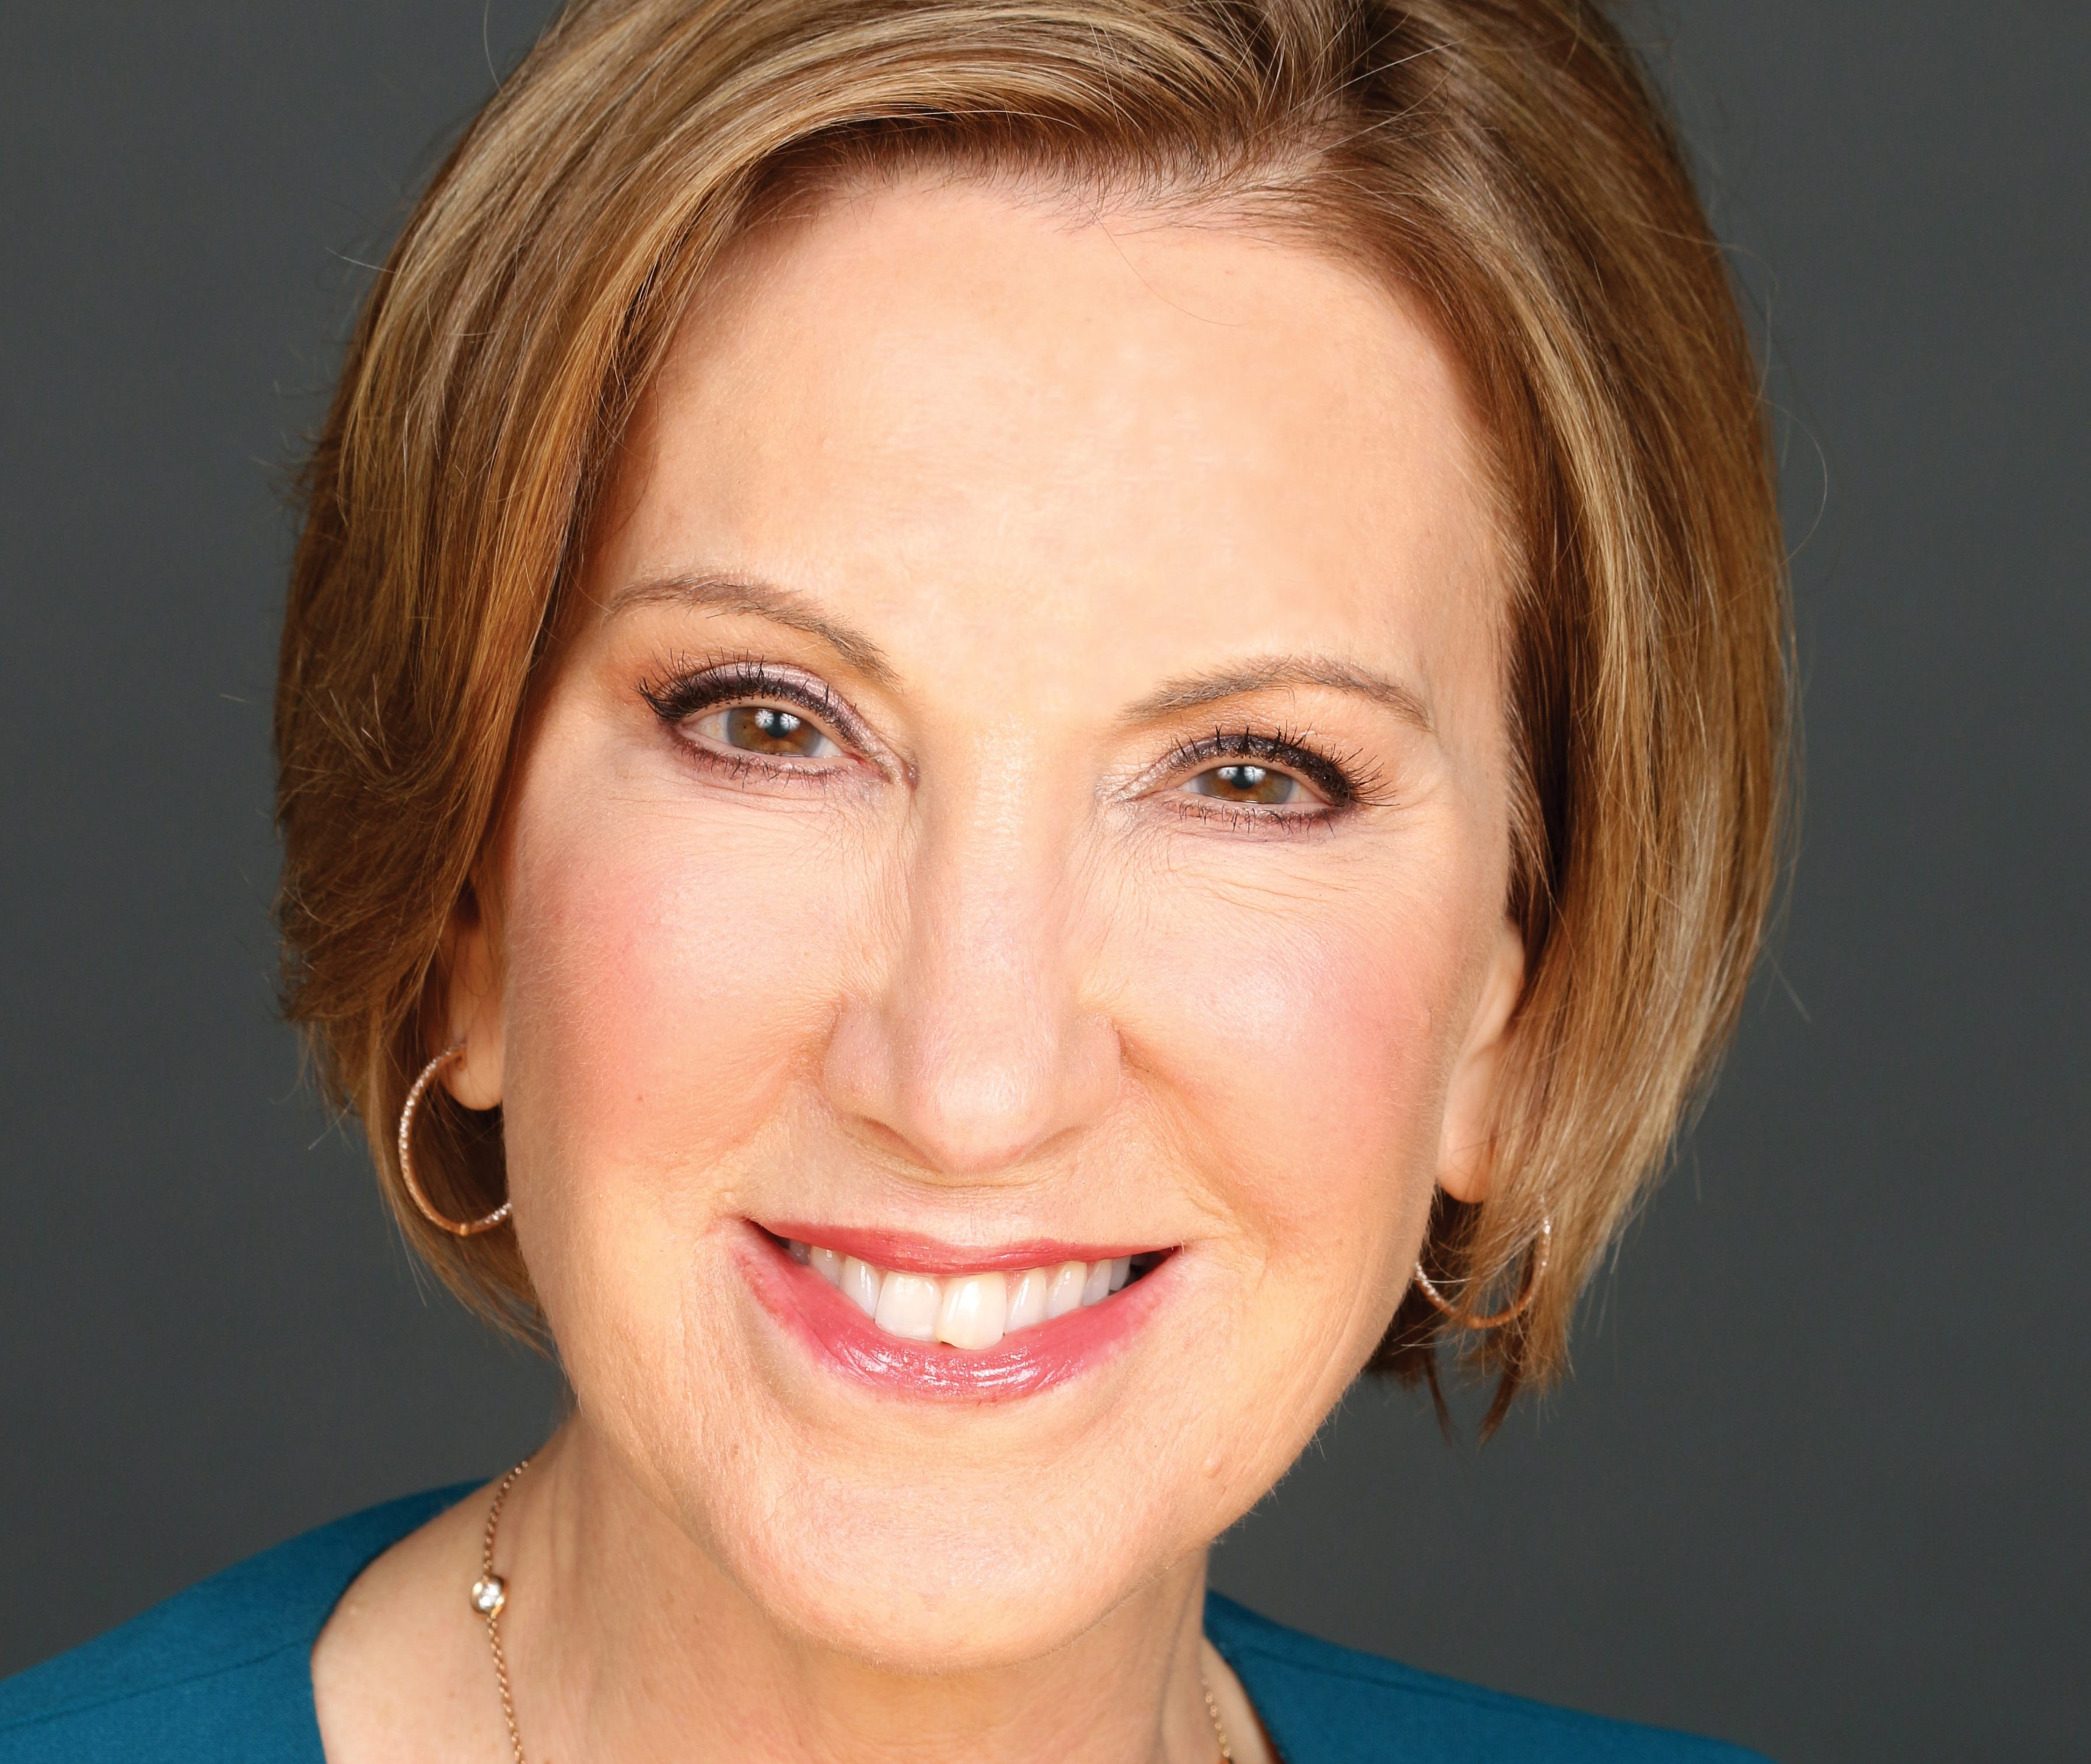 CNLP 256: Carly Fiorina on Her Journey from Secretary at a Real Estate Firm to CEO of a Fortune 20 Company to Running for President of the United States